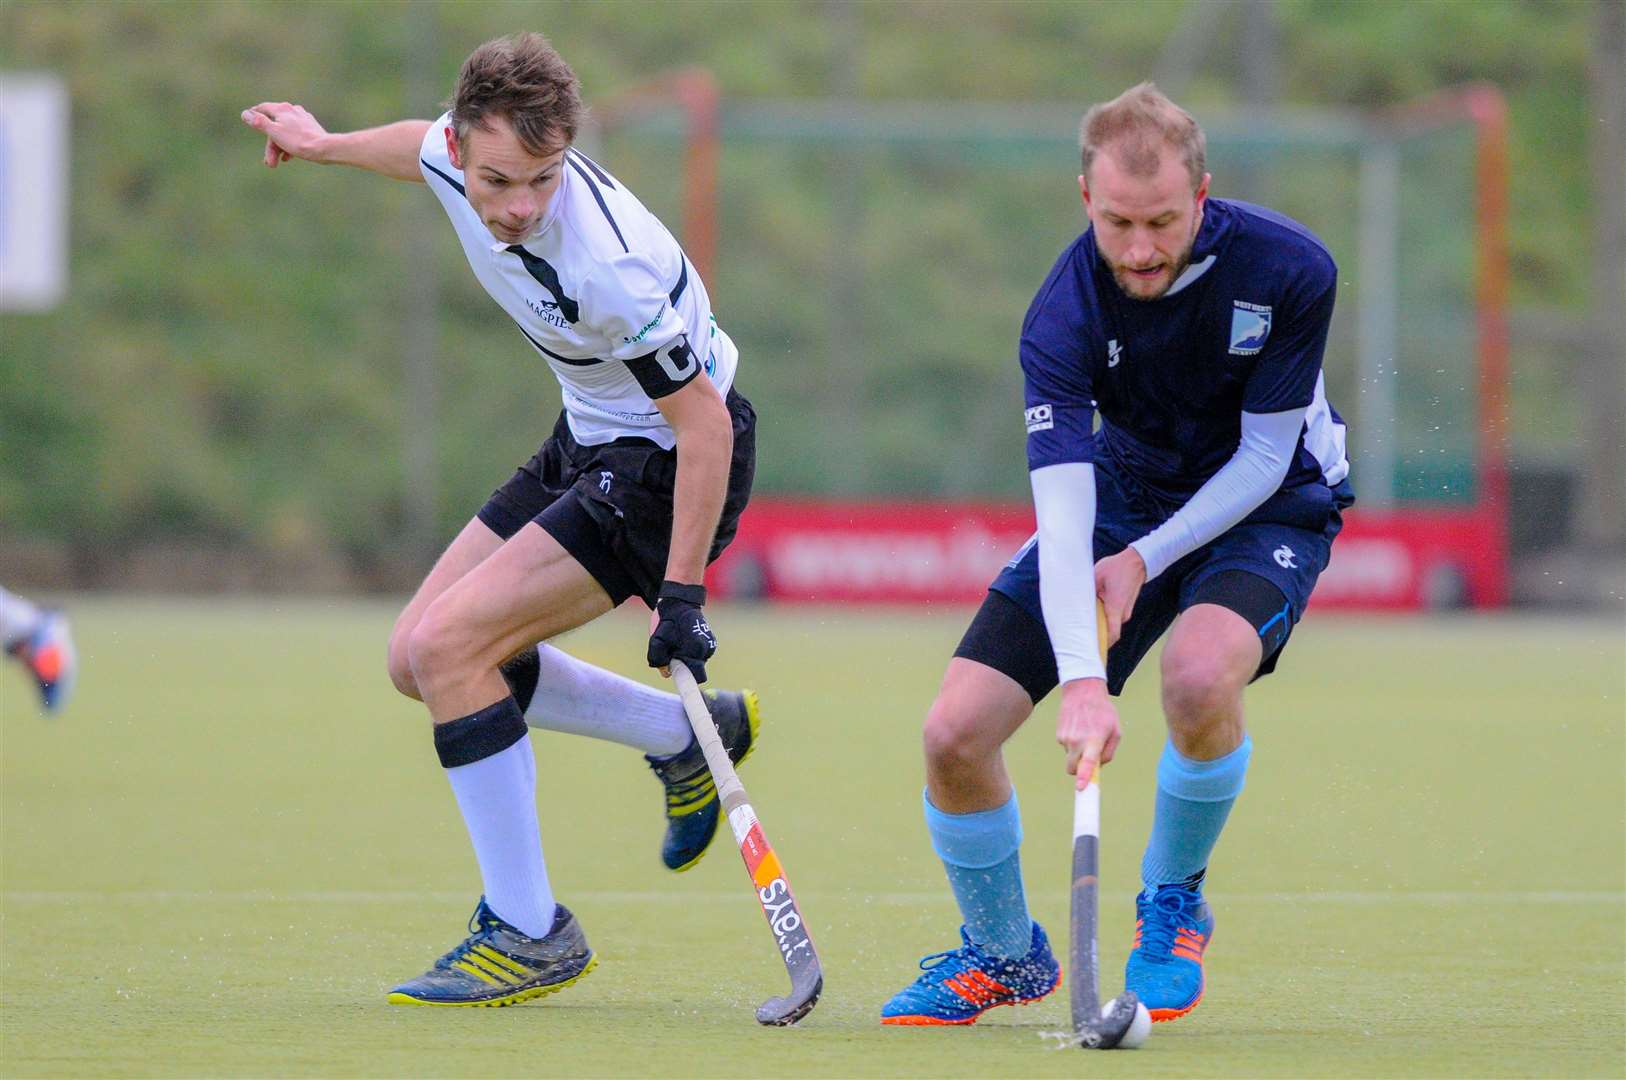 Hockey action from Harleston Magpies Men's 1st v West Herts - Tom Ridley..Picture by Mark Bullimore Photography. (6022313)